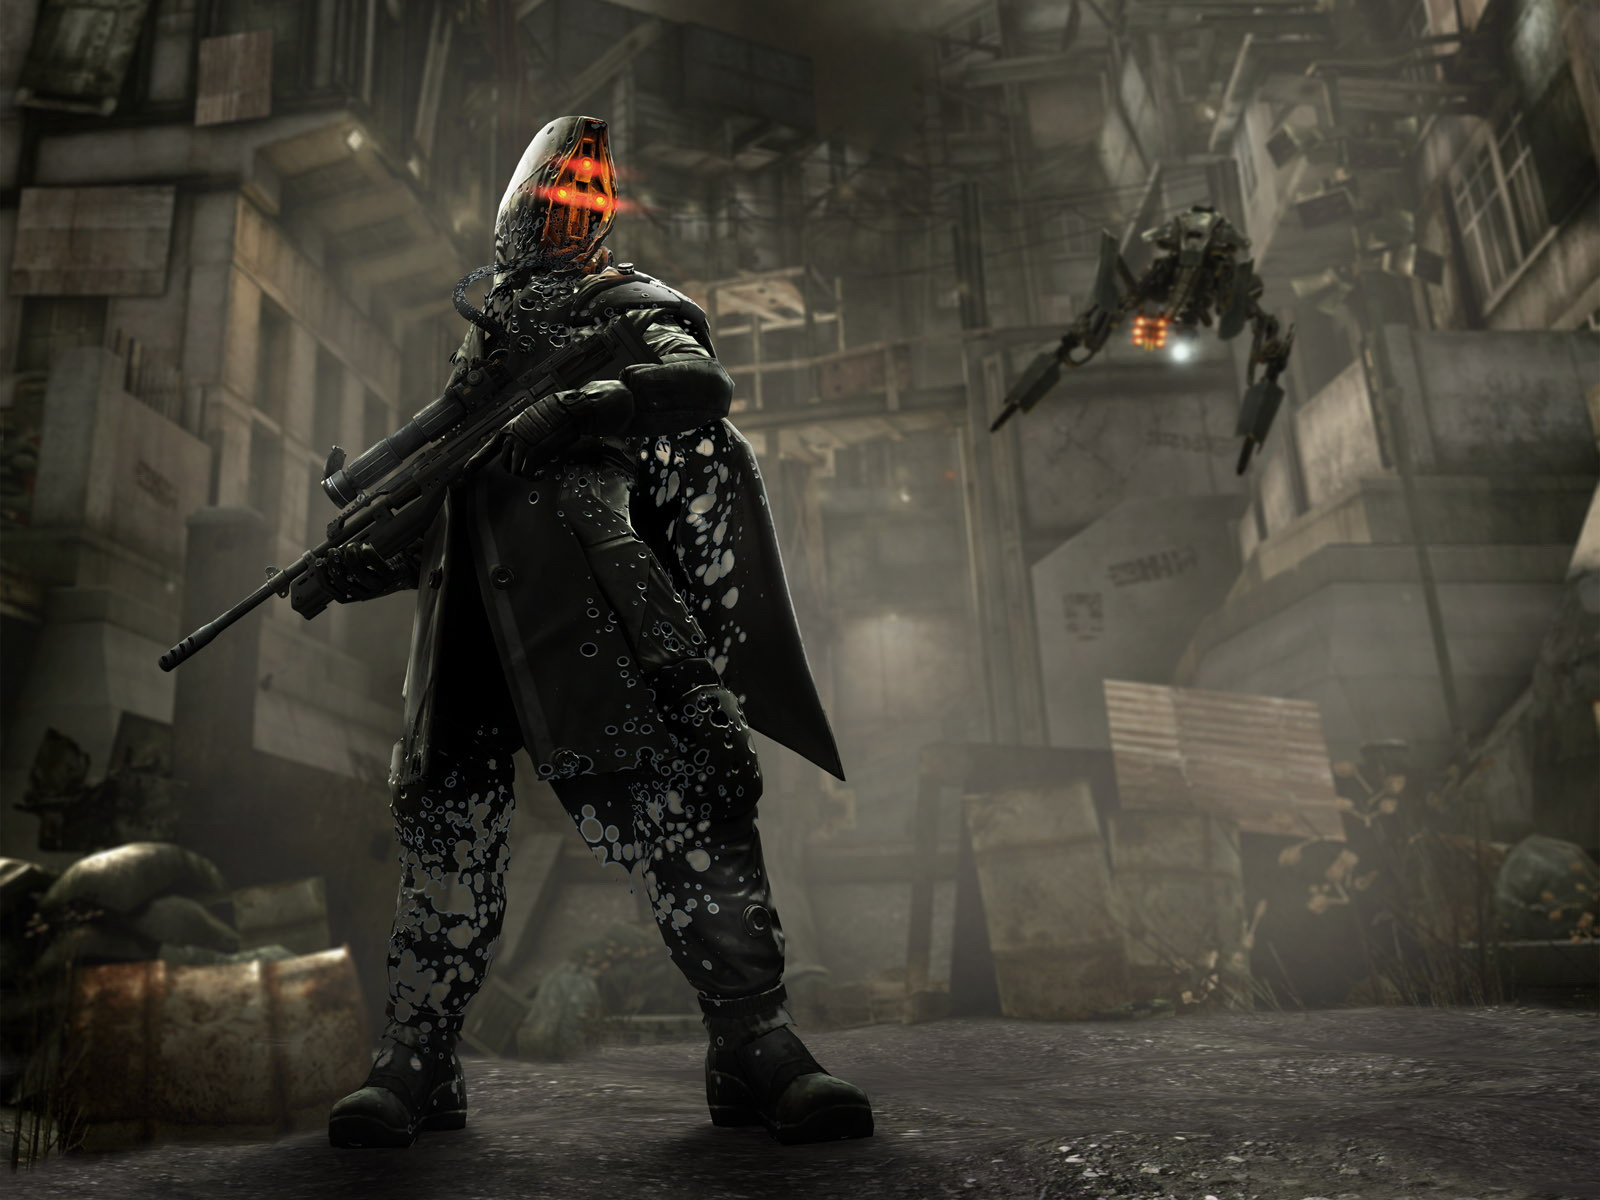 Helghast Sniper Wallpapers Cartoon Anime Wallpapers Desktop Dream 1600x1200